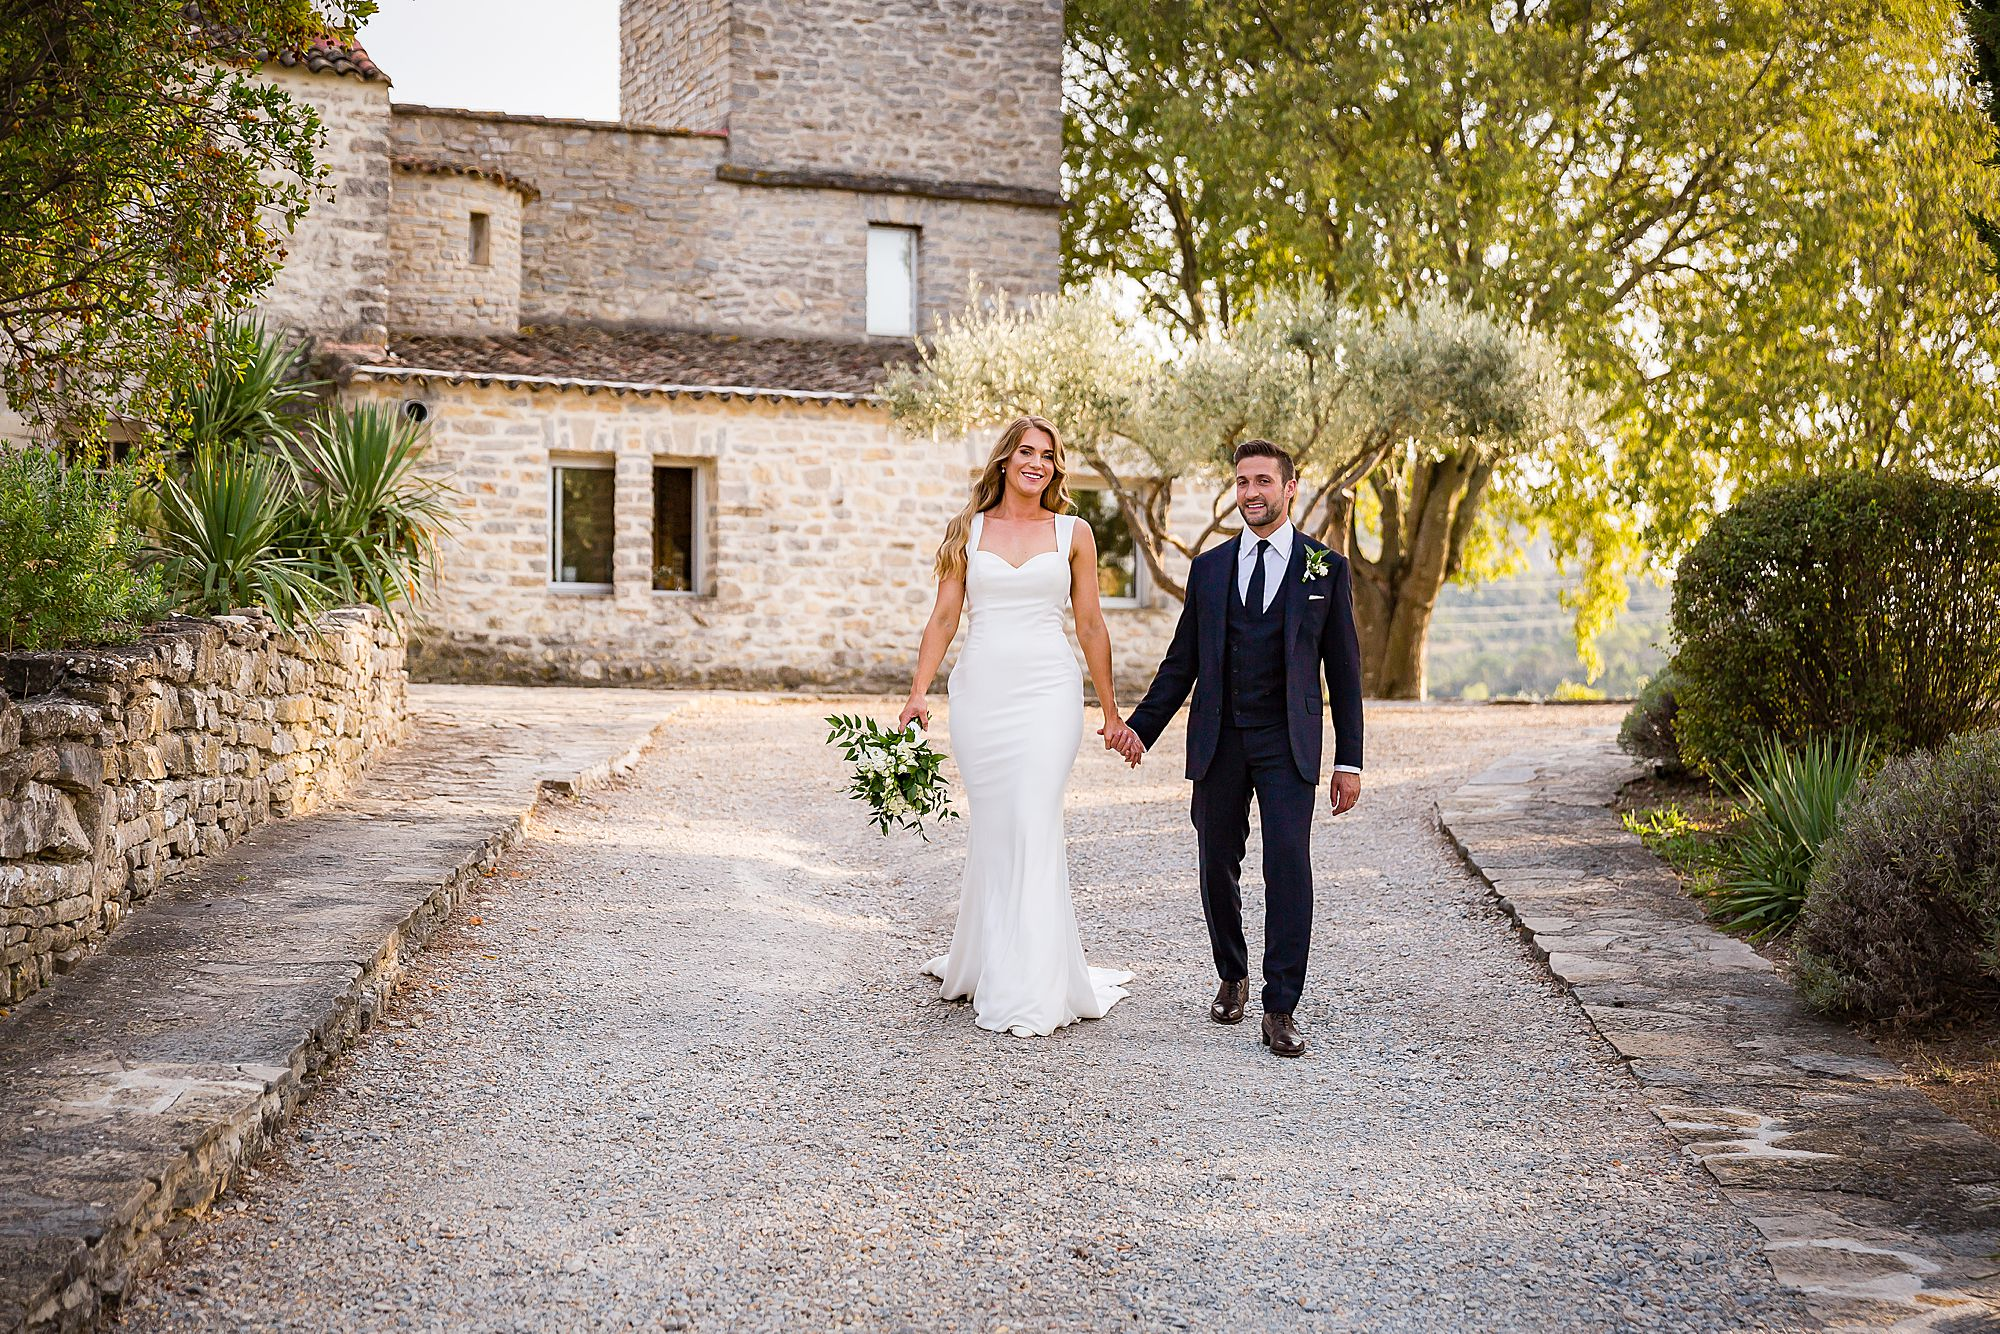 Mas saint germain wedding